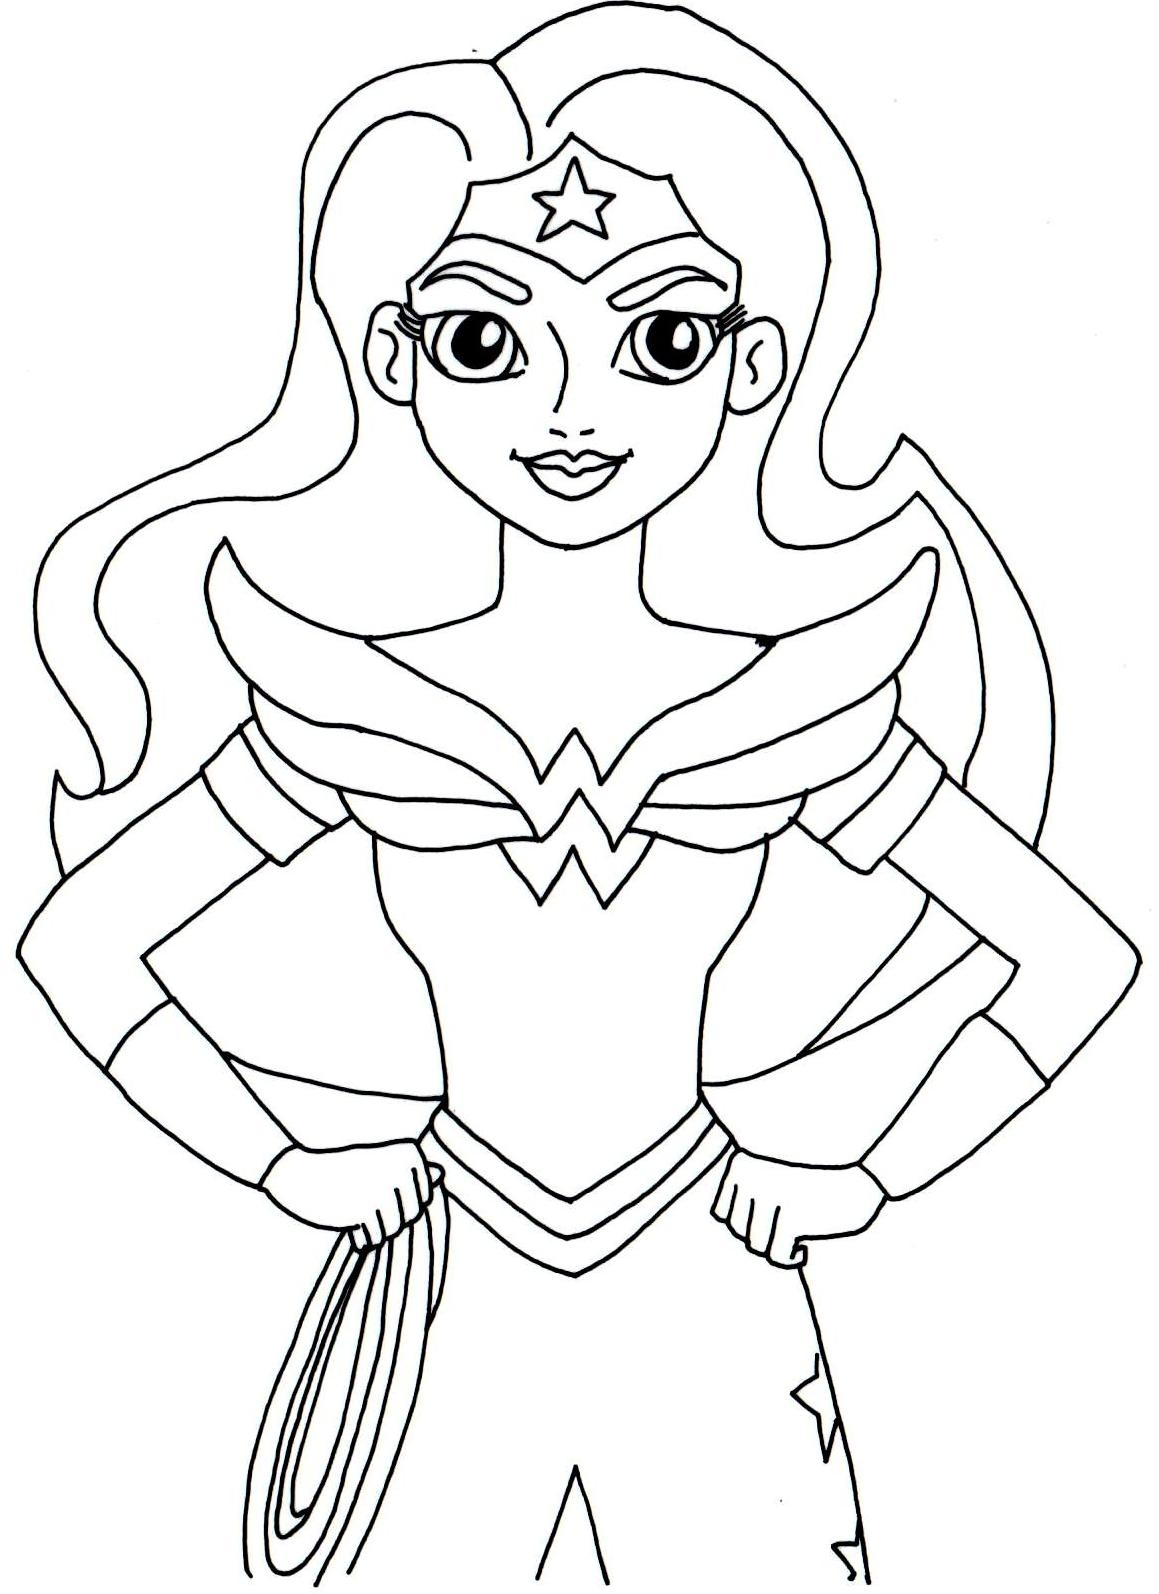 Wonder Woman Coloring Pages - Wonder Woman Coloring Pages Best Coloring Pages for Kids